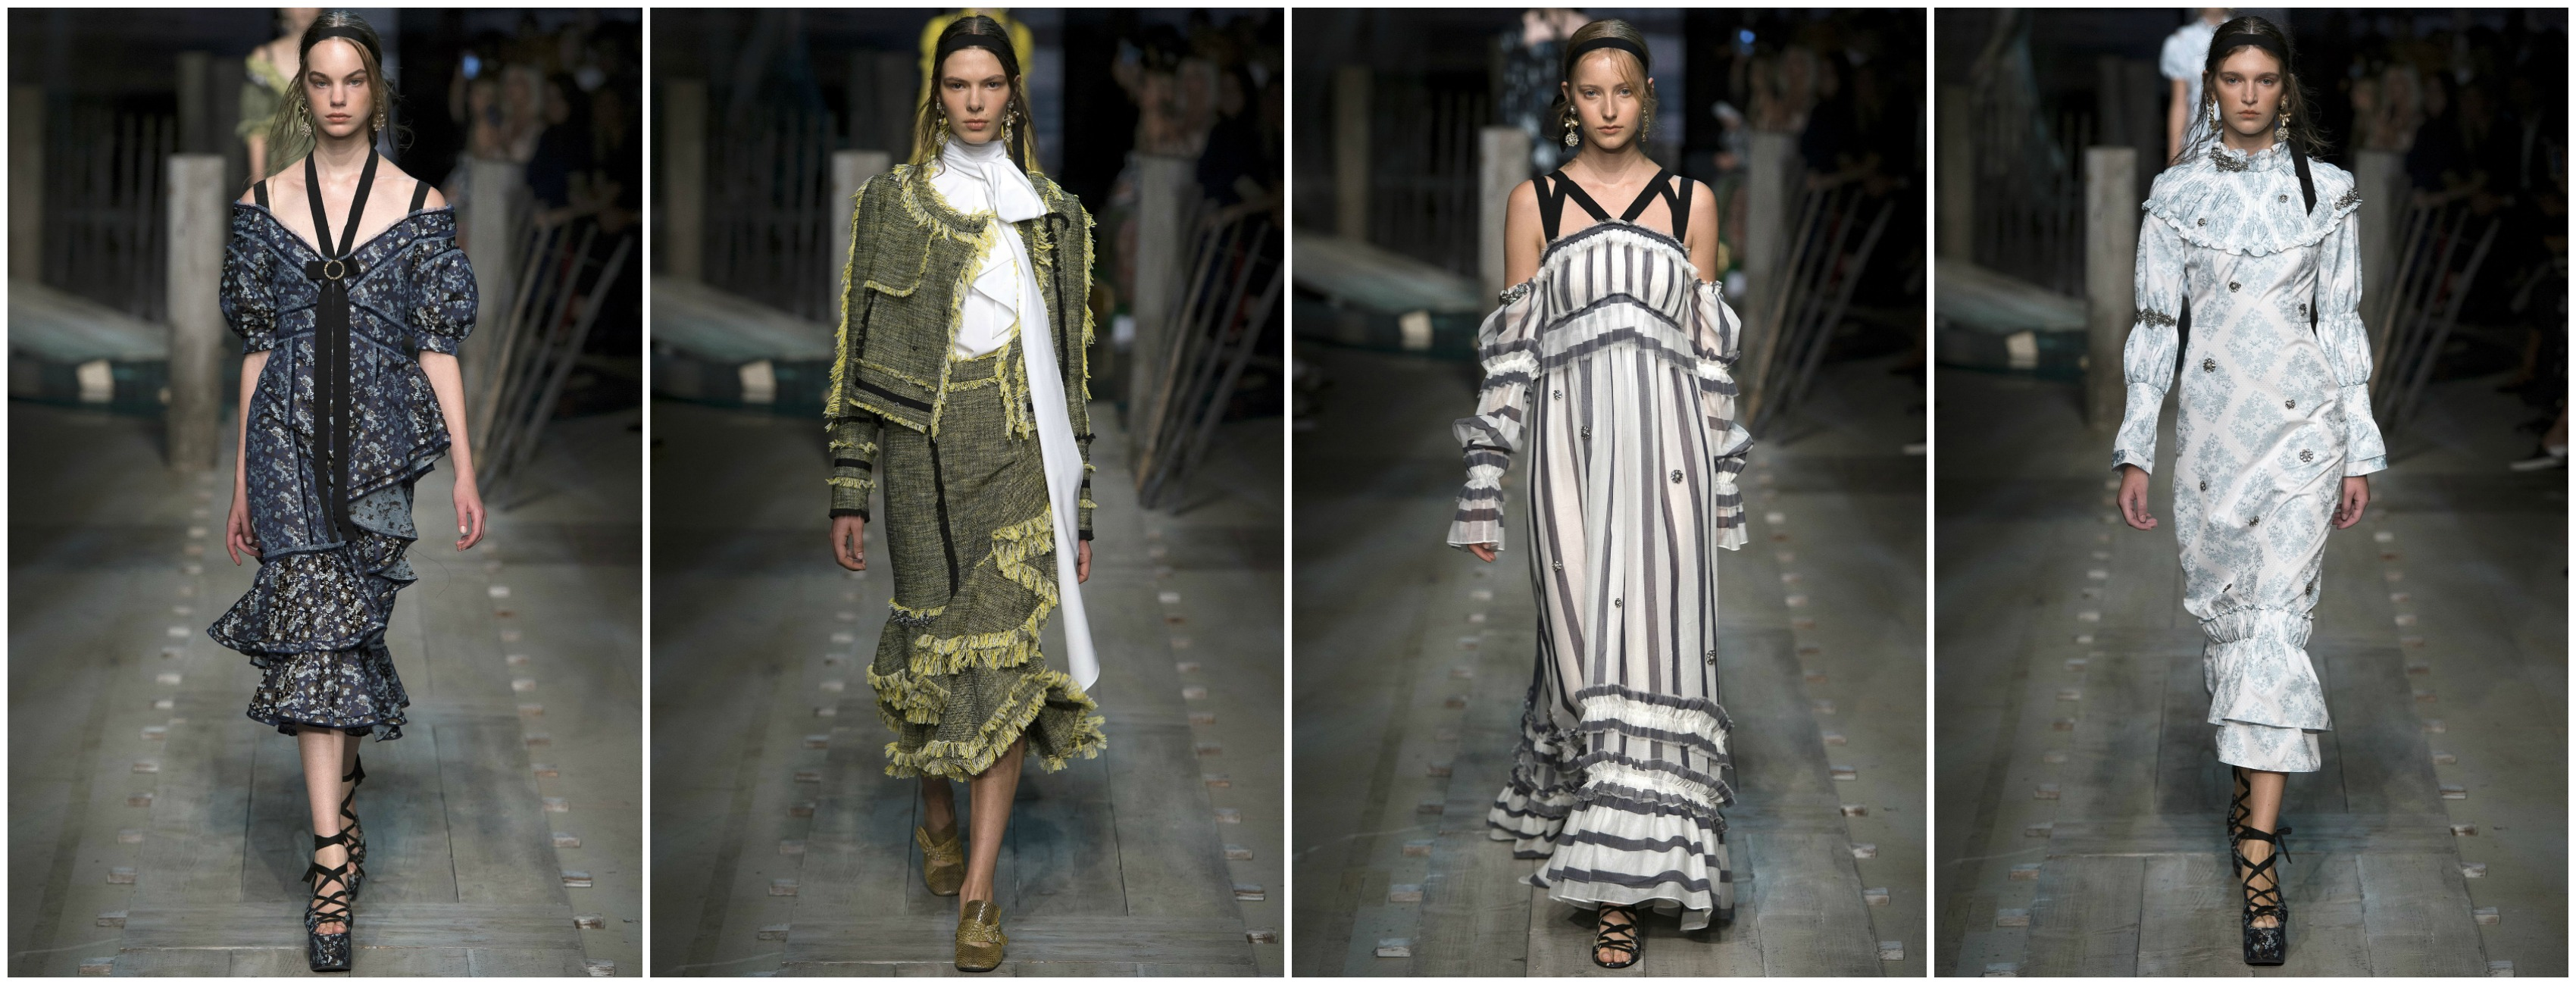 london fashion week id couture styling erdem 2016